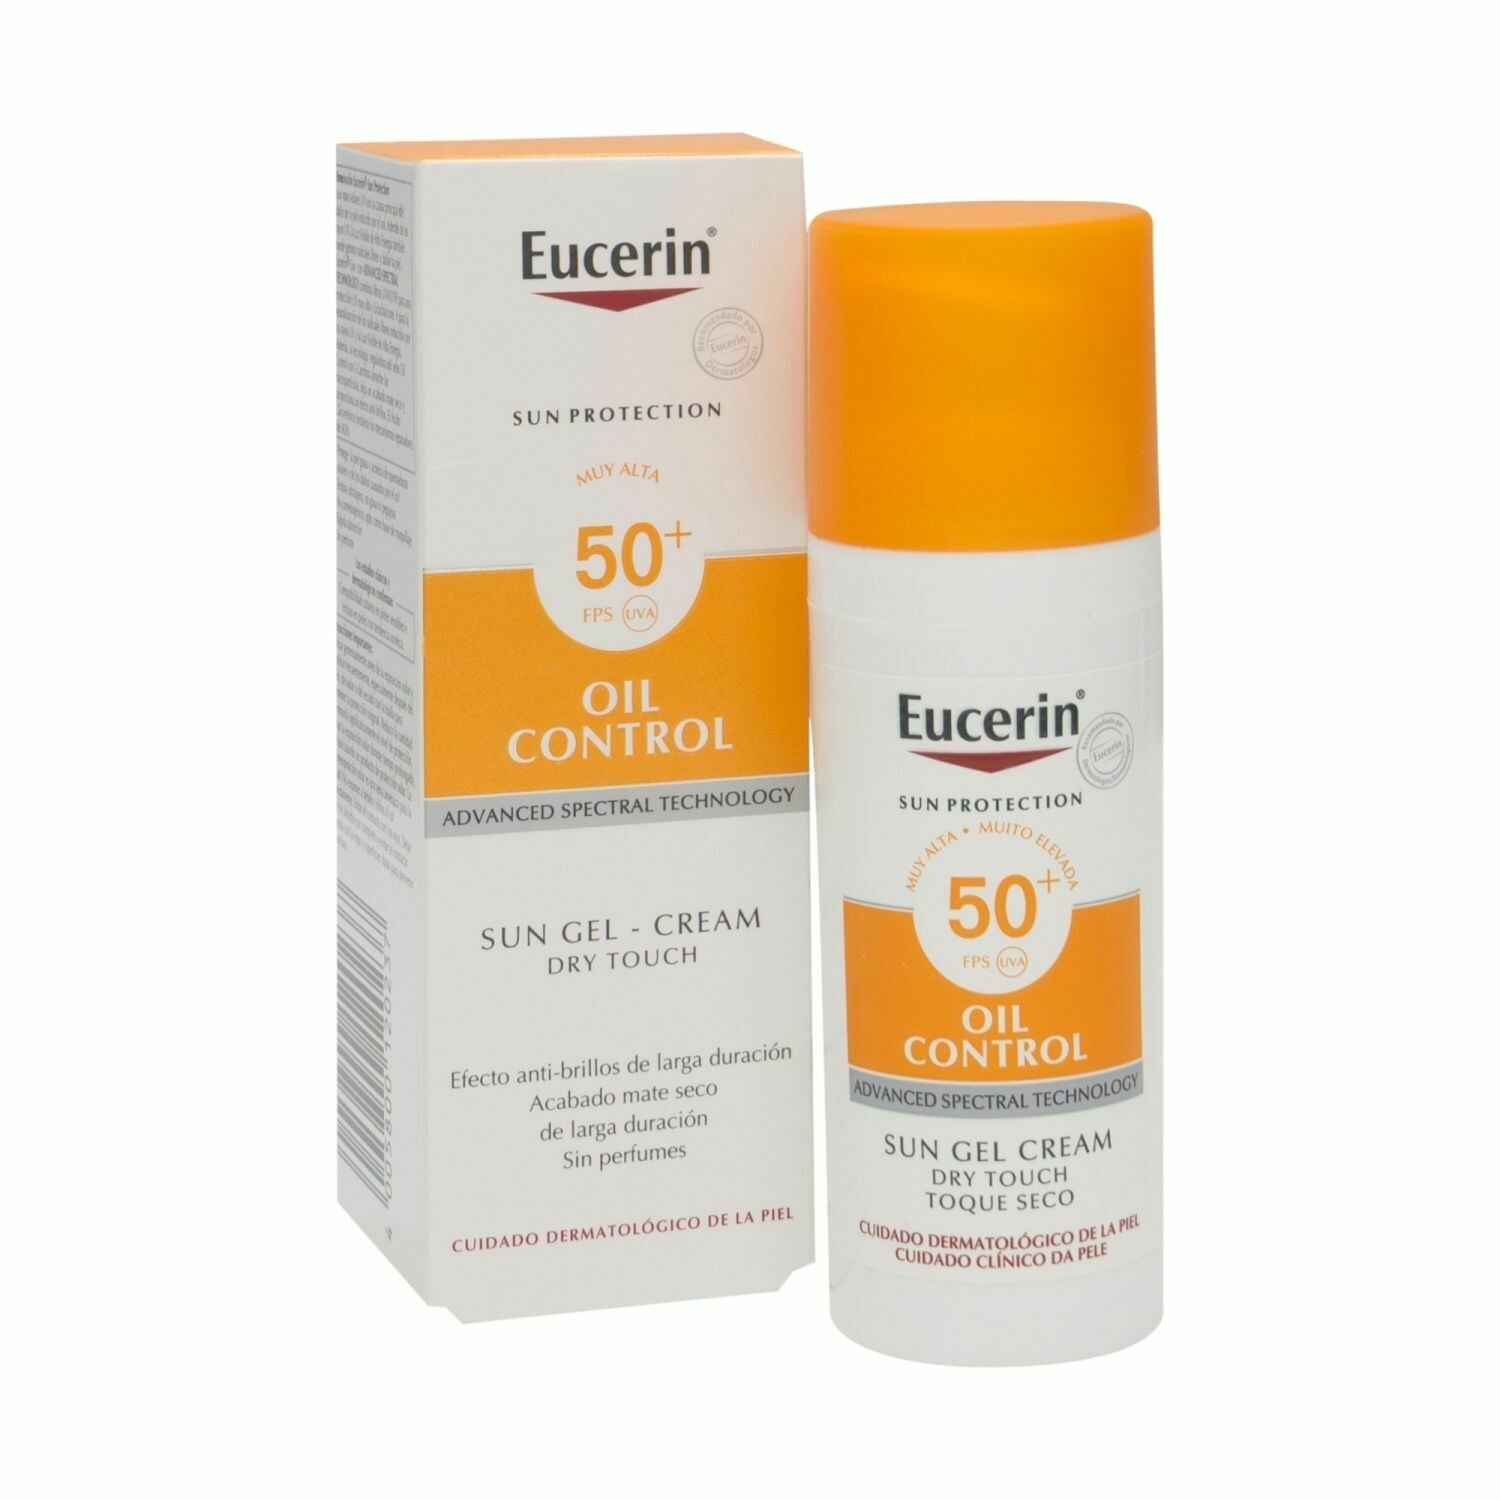 Eucerin oil control Dry Touch SPF50+ sun gel cream 50ml